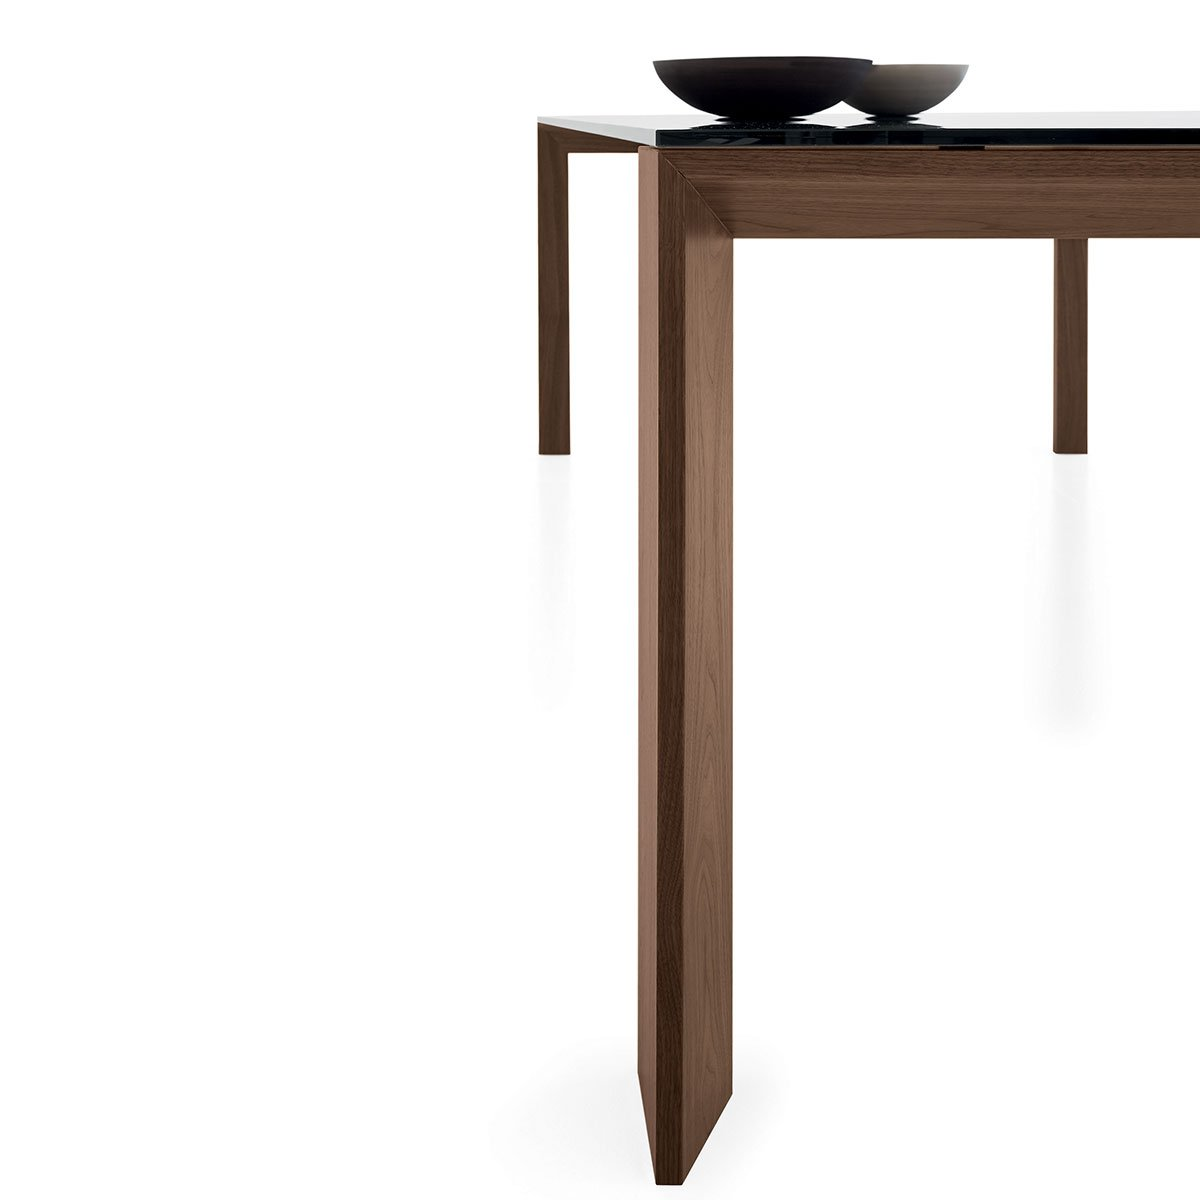 Toronto wood and glass top table klarity furniture